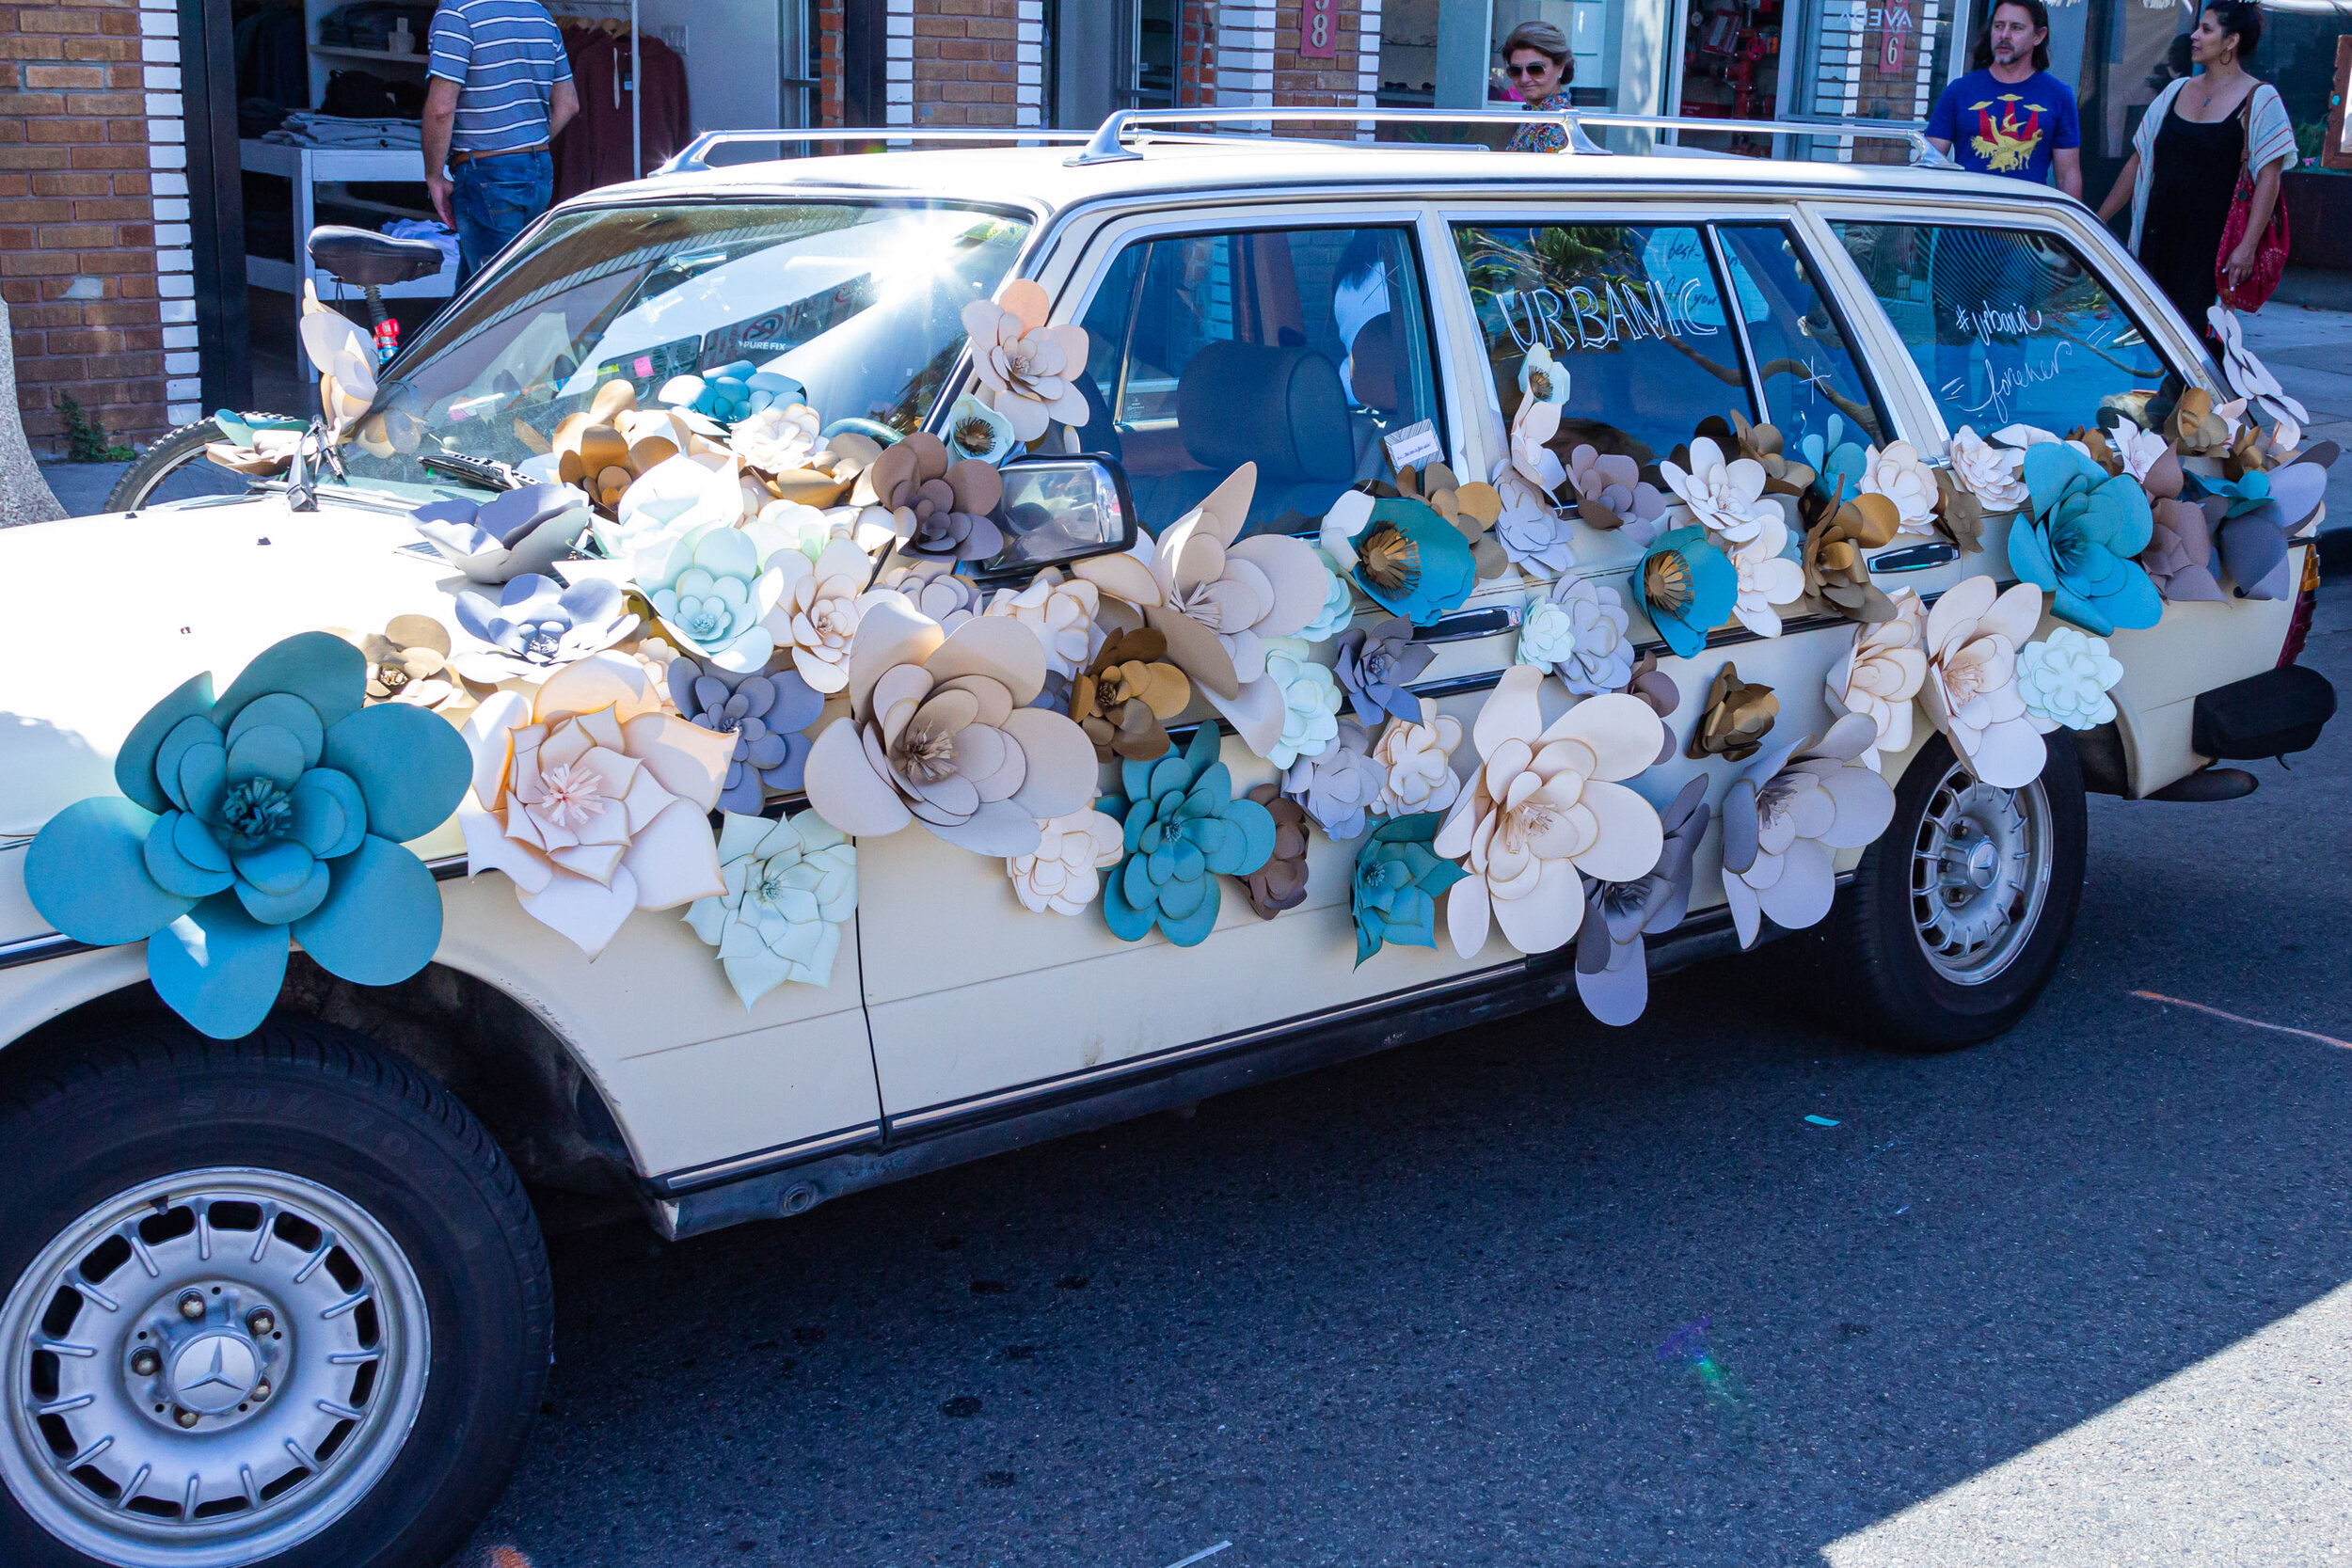 A heavily decorated car at the Abbot Kinney Festival, held the last Sunday in September for the past 35 years, on Abbot Kinney Blvd., Venice, California, on Sunday, September 29th 2019. (Marco Pallotti/The Corsair)